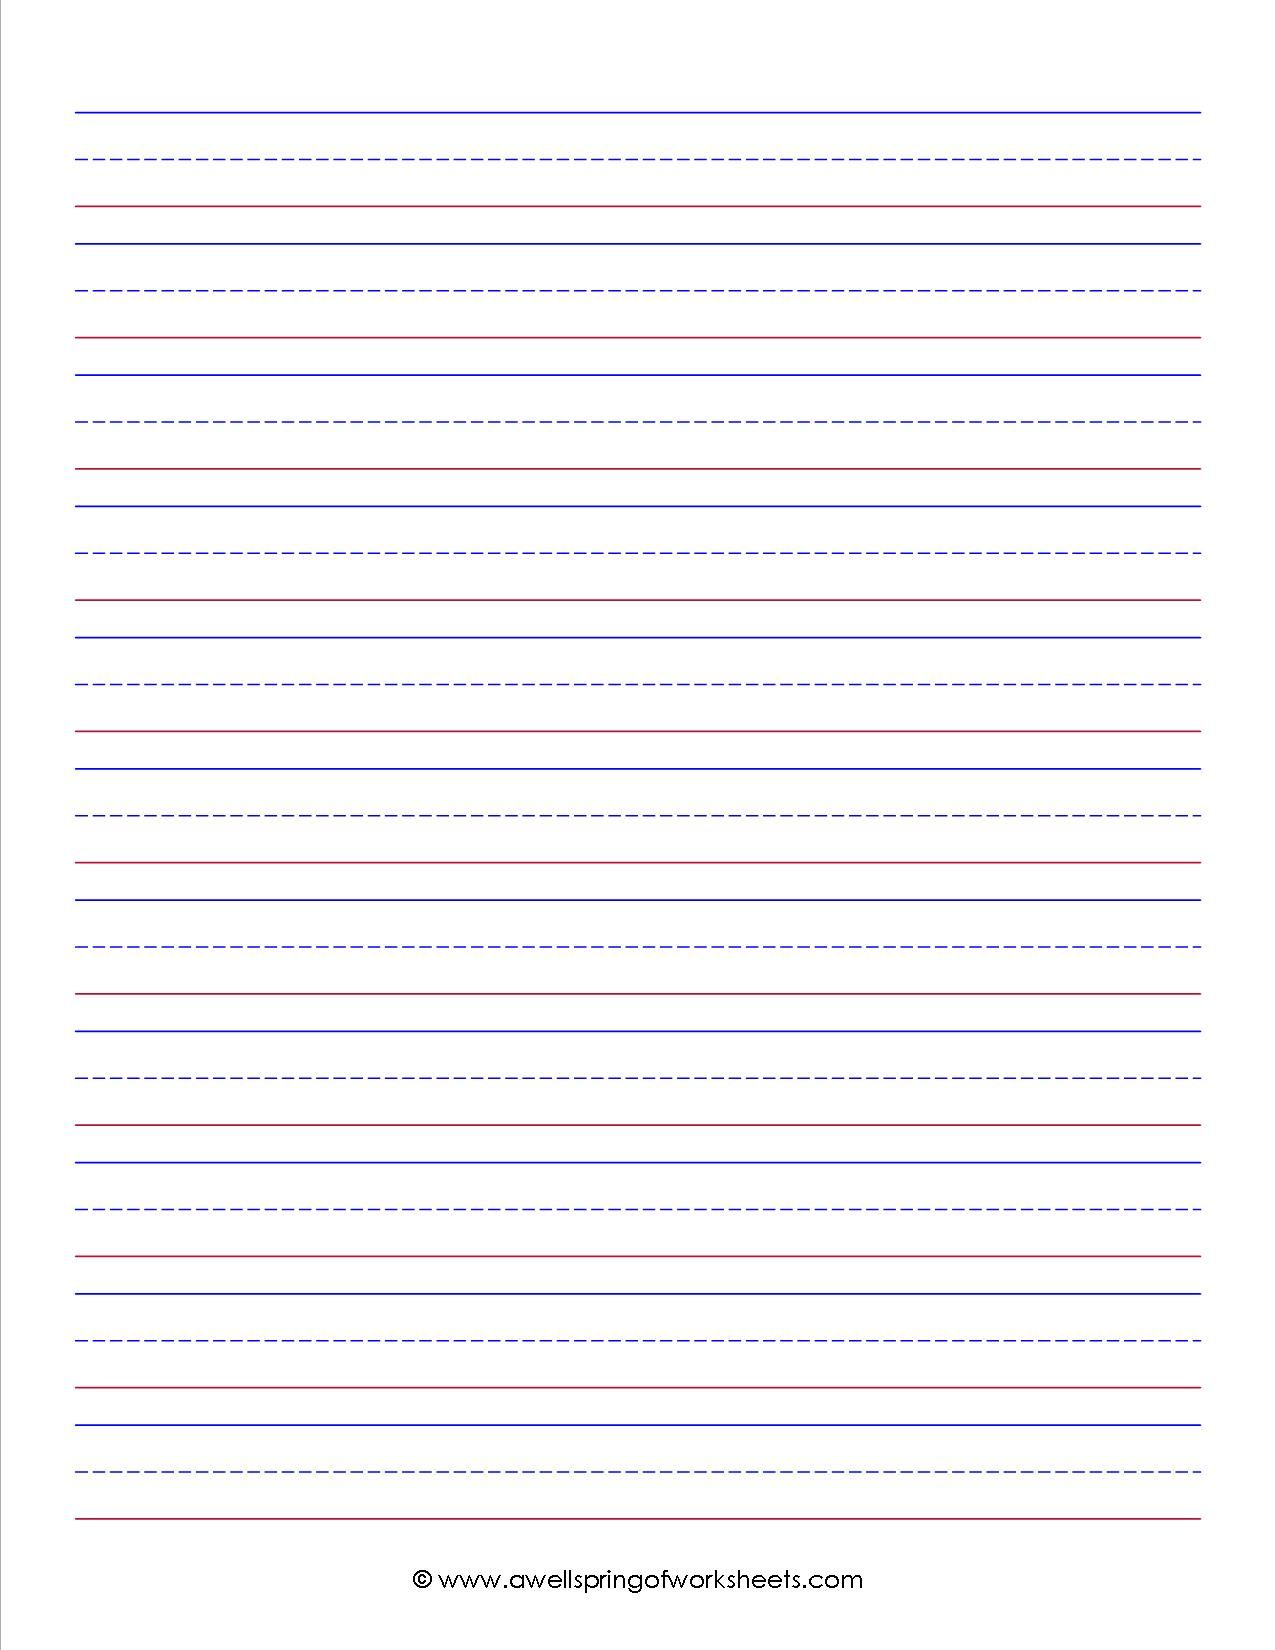 Primary Grade Lined Writing Paper